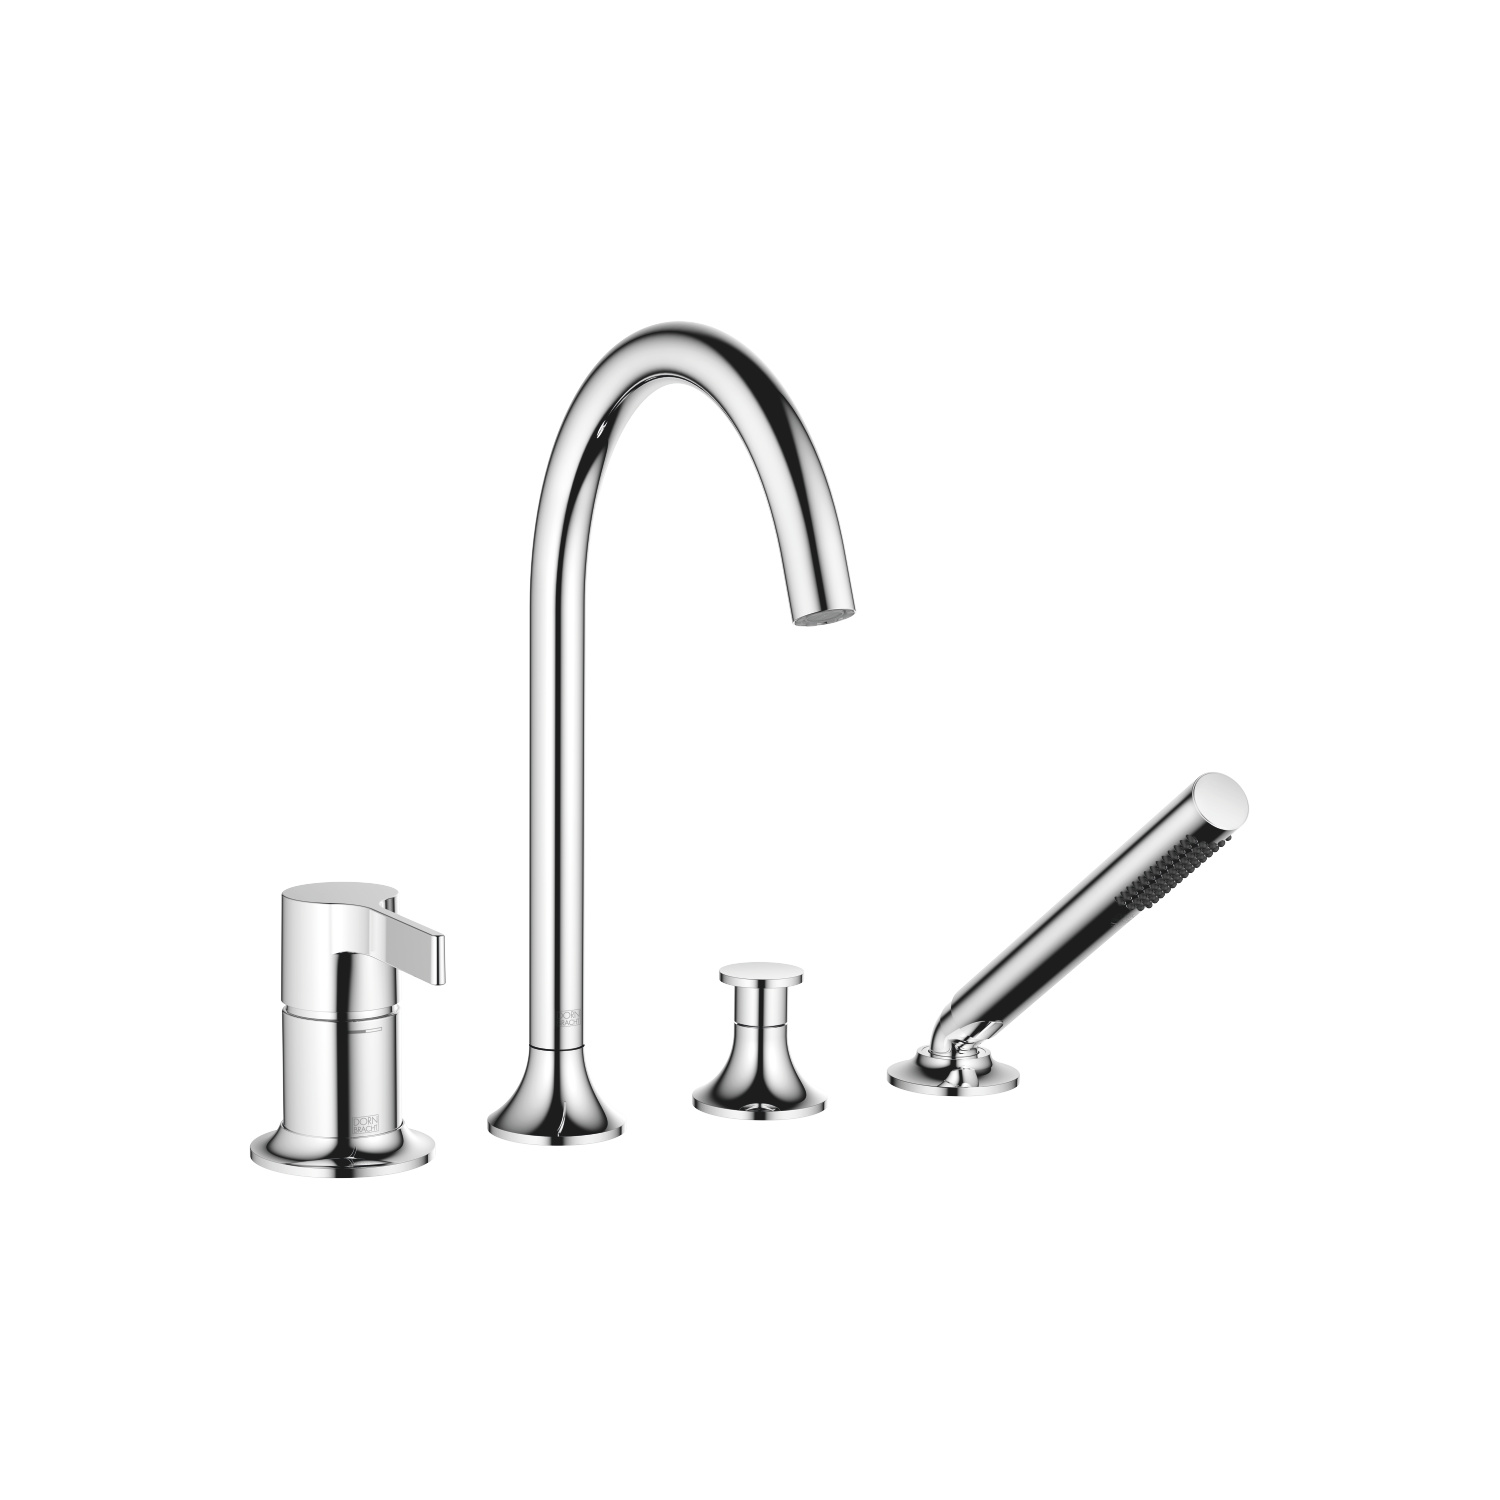 Bath shower set for bath rim or tile edge installation - polished chrome